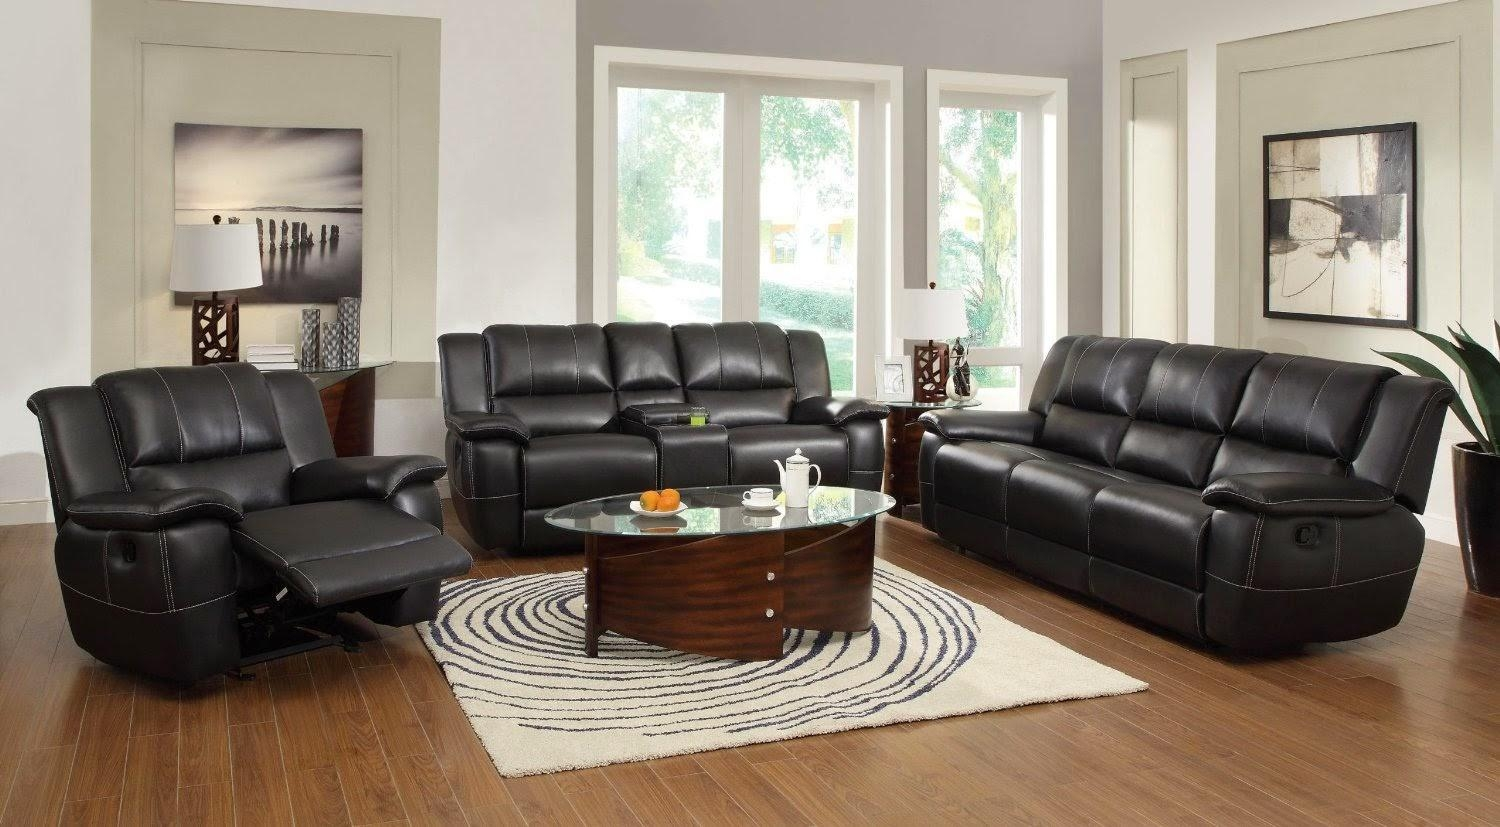 Berkline Sofa Recliner ~ Hmmi Inside Berkline Sofa Recliner (Image 9 of 20)